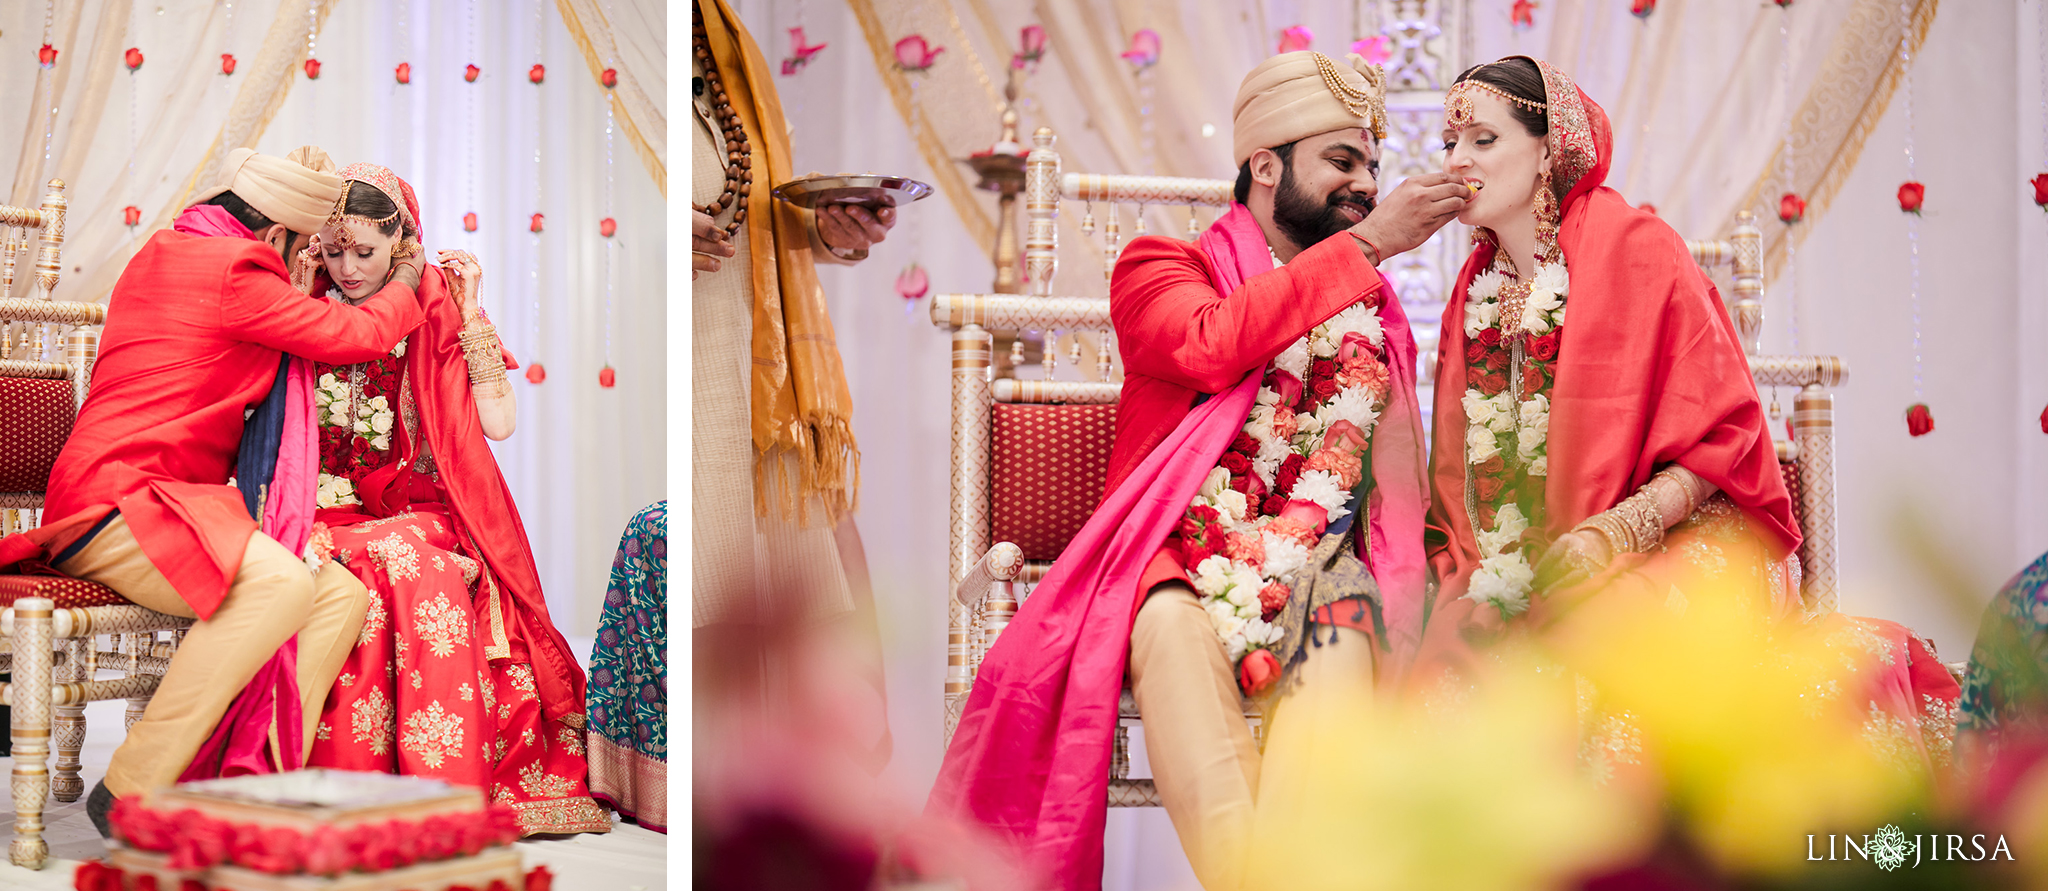 20 Hotel Irvine Multicultural Indian Wedding Photography